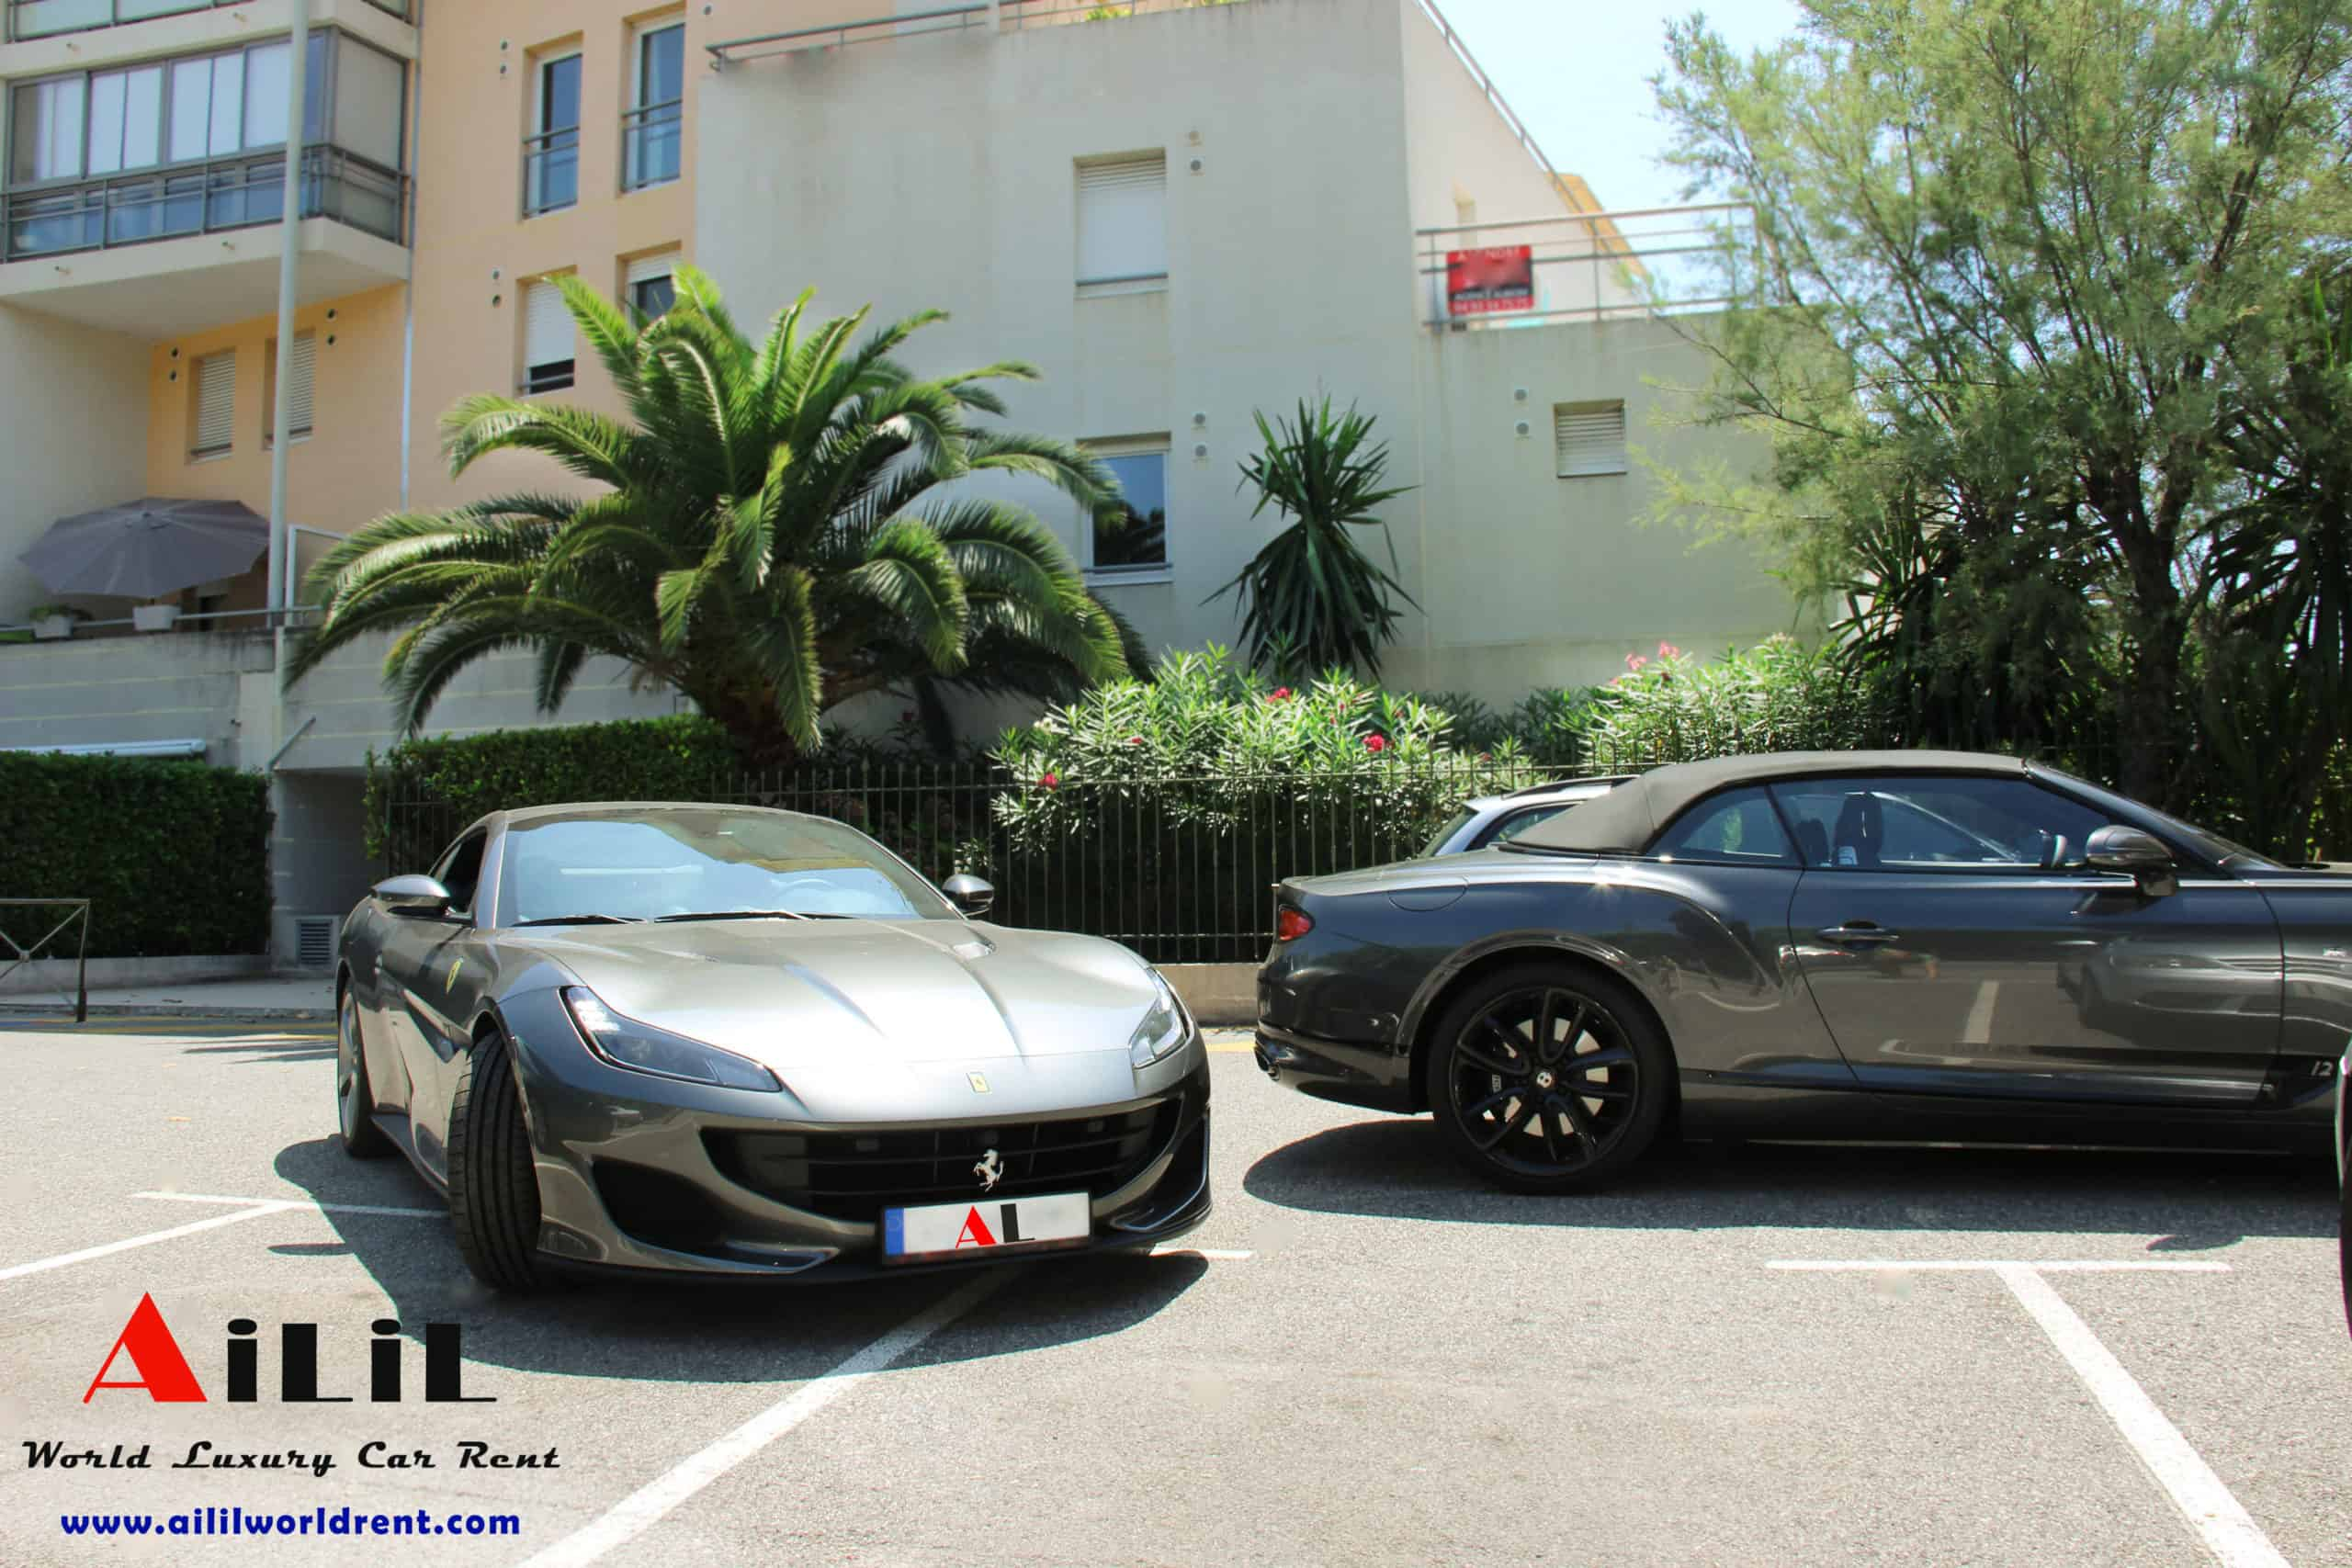 ferrari portofino rent in cannes, rent ferrari portofino cabrio rent in munich, rent ferrari portofino in monaco,rent ferrari portofino in ce, rent ferrari portofino in menton, rent ferrari portofino in antibes, rent ferrari portofino in cannet